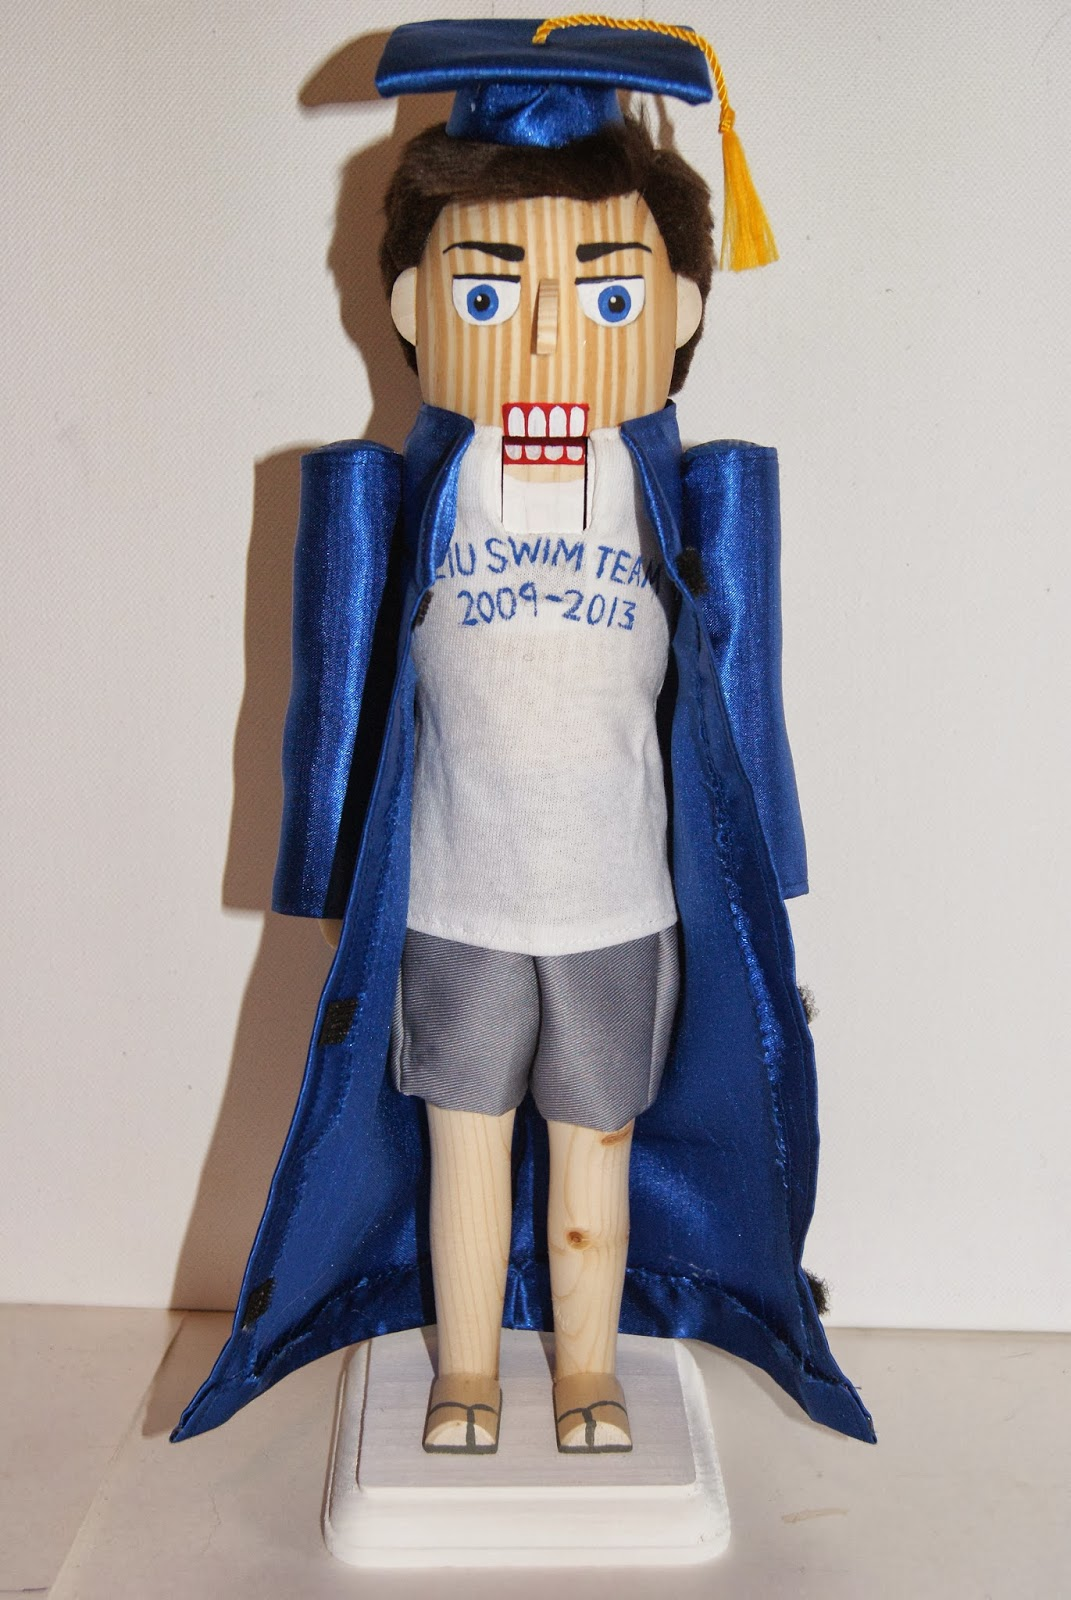 Here are some recent Graduate Nutcrackers I have done.